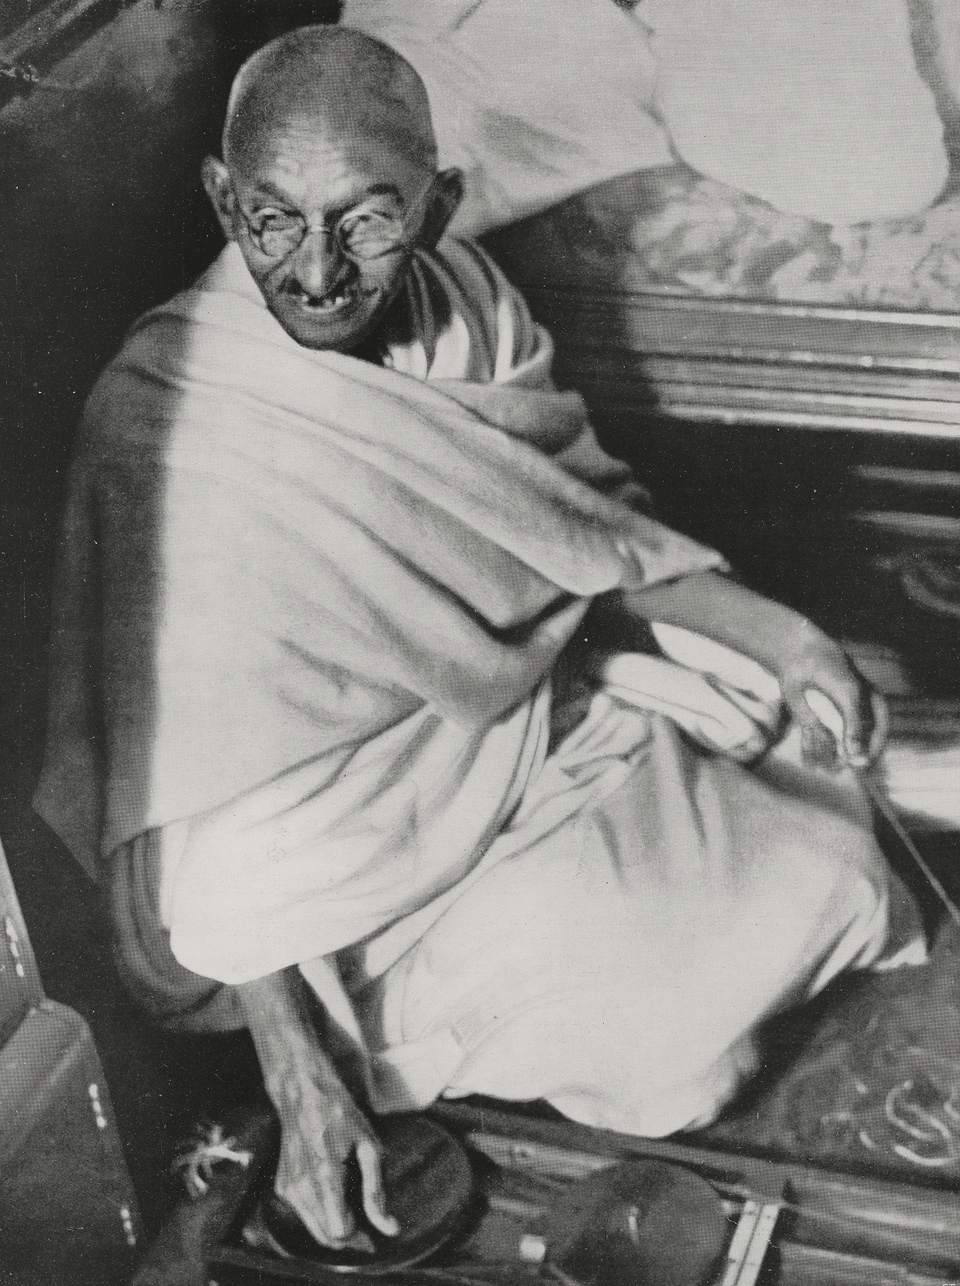 Mahatma Gandhi in robes sitting